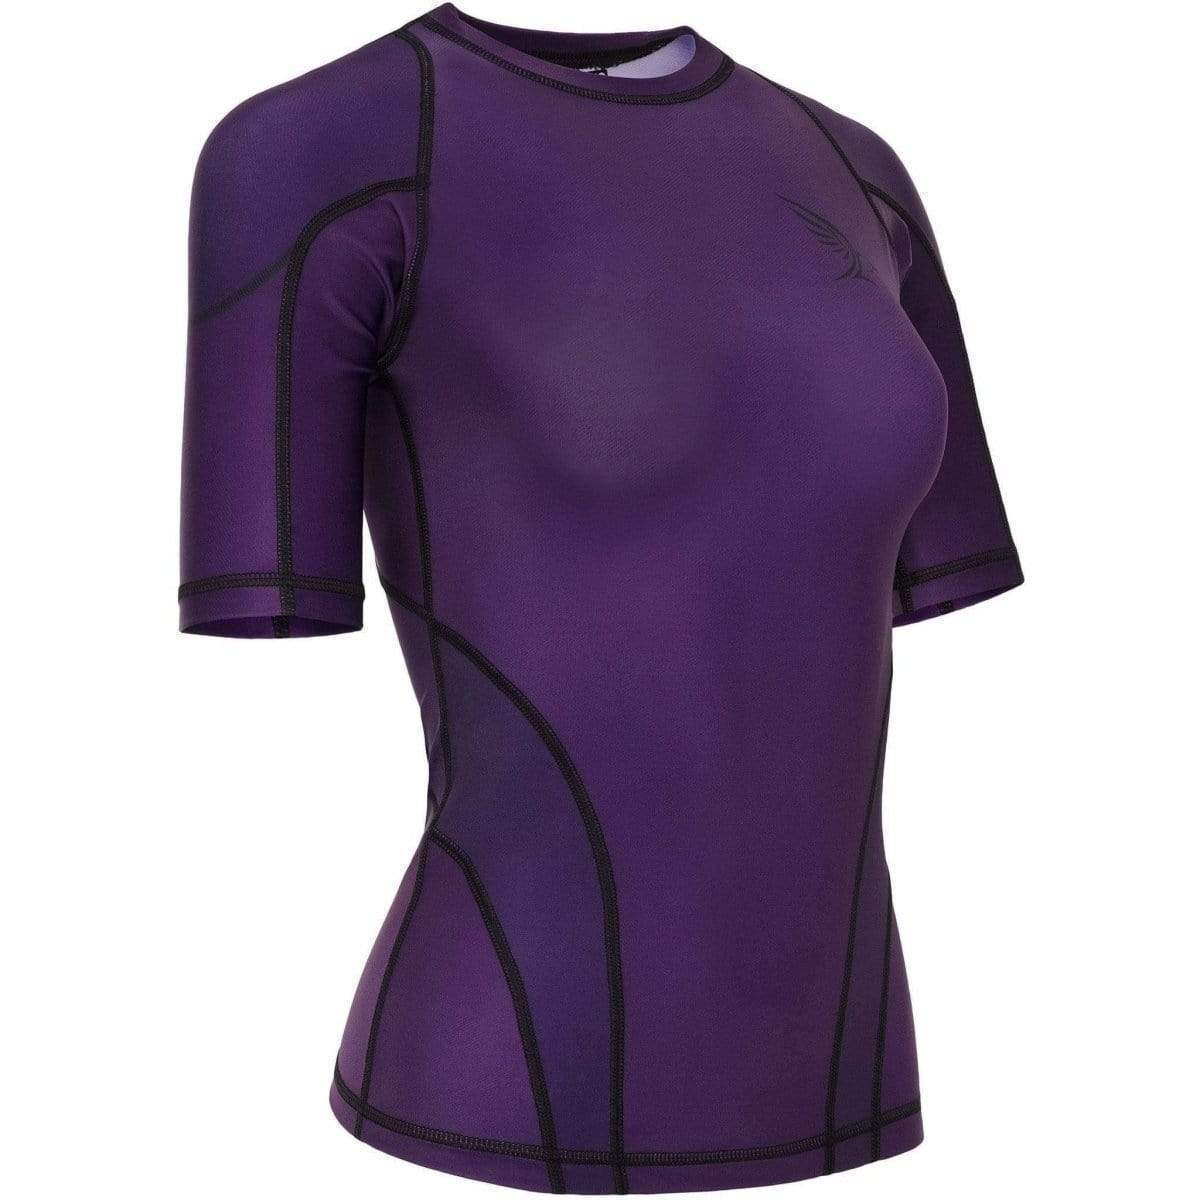 Habrok Rash Guard XS / PURPLE Pugnator 2.0 | Rash Guard | Women | Half Sleeve | Purple